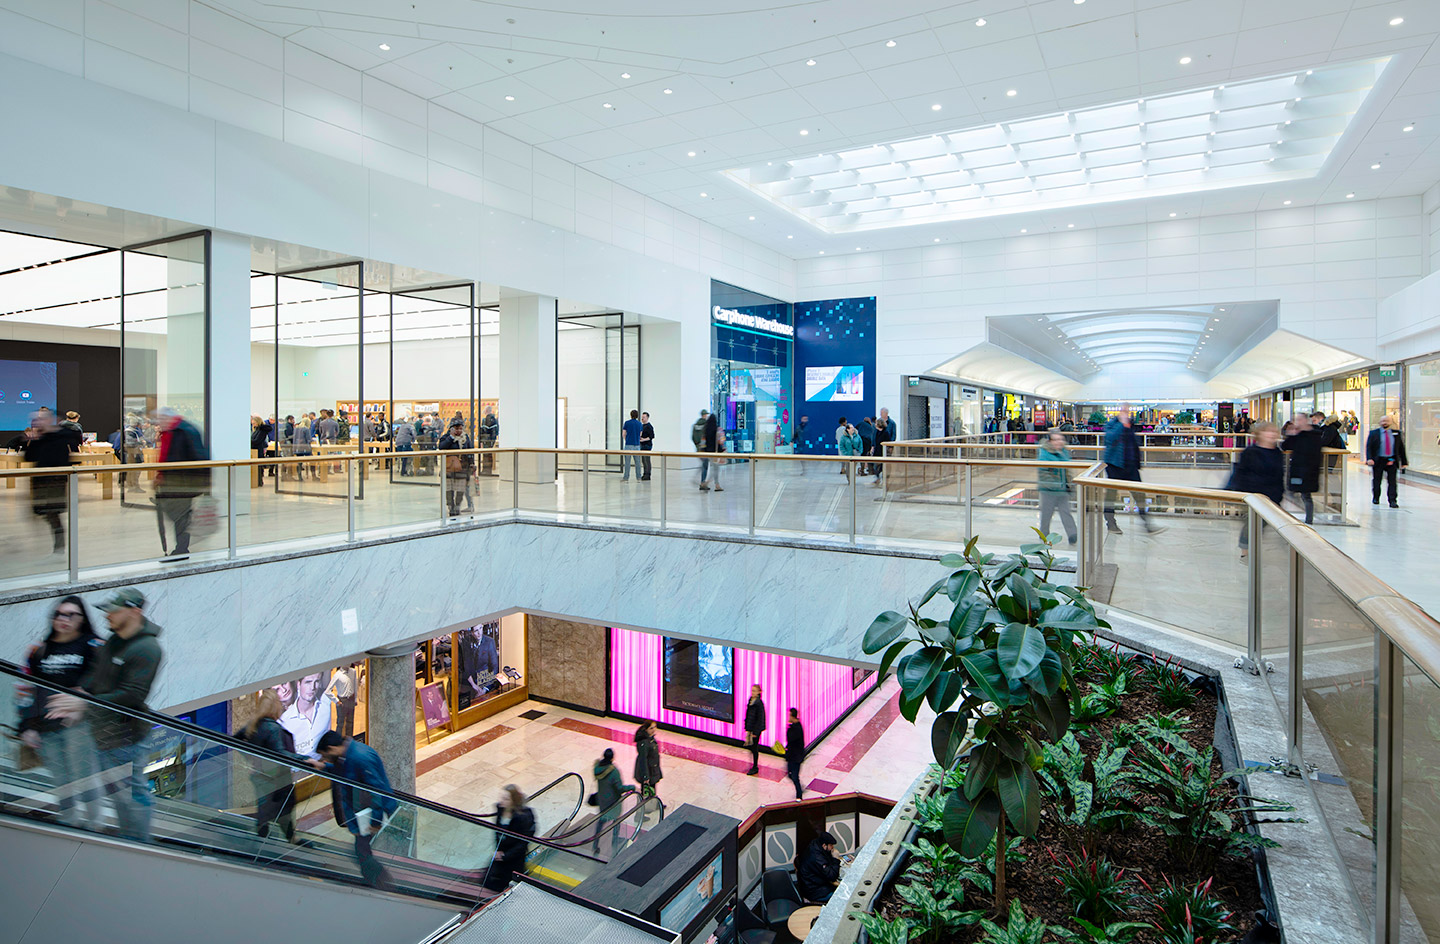 CG image of Brent Cross London shopping centre interior